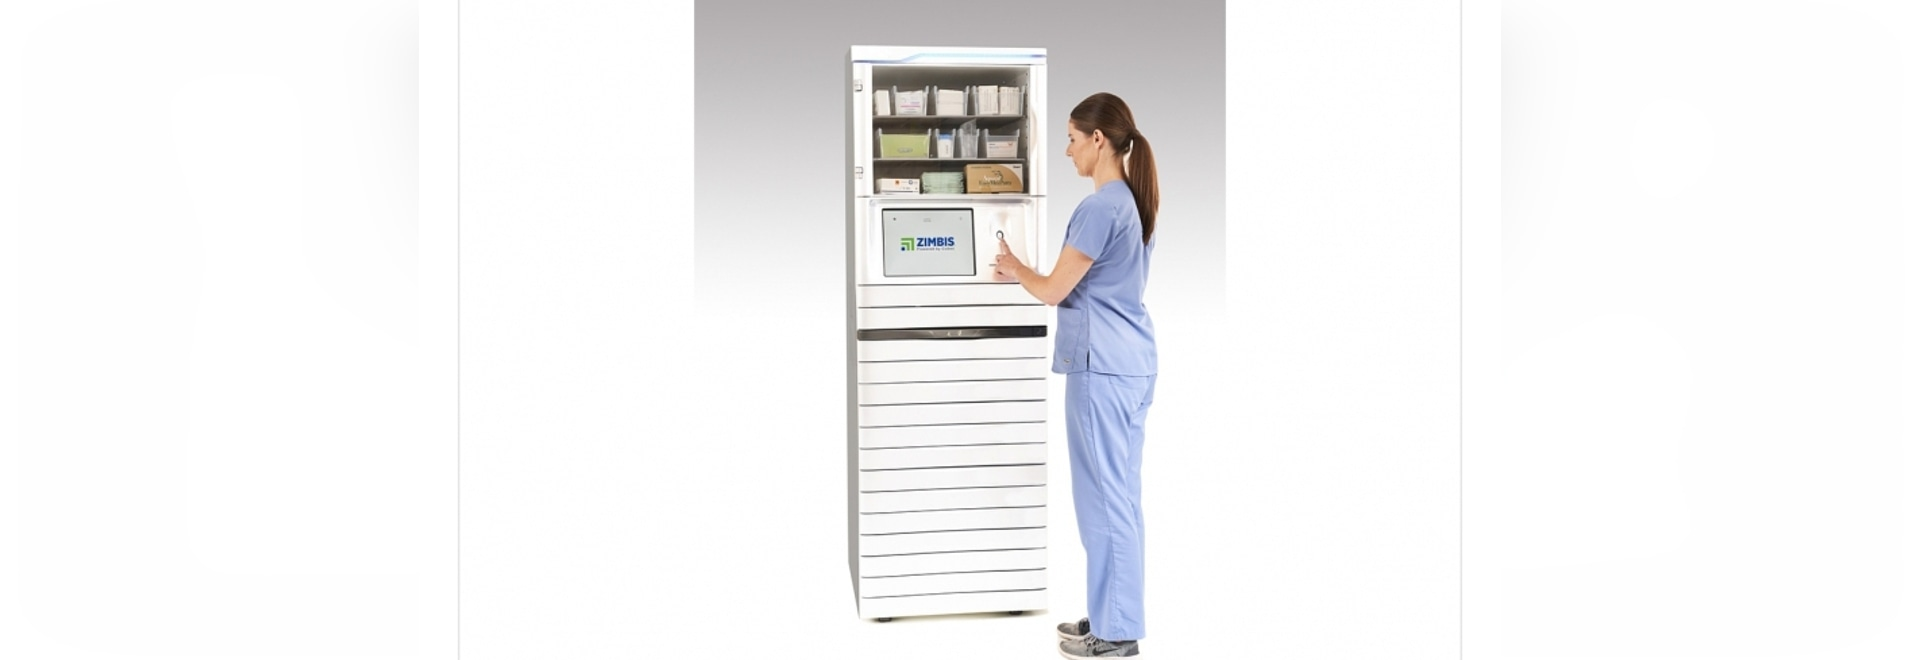 Cabinets Feature Automated Dispensing to Reduce Costs